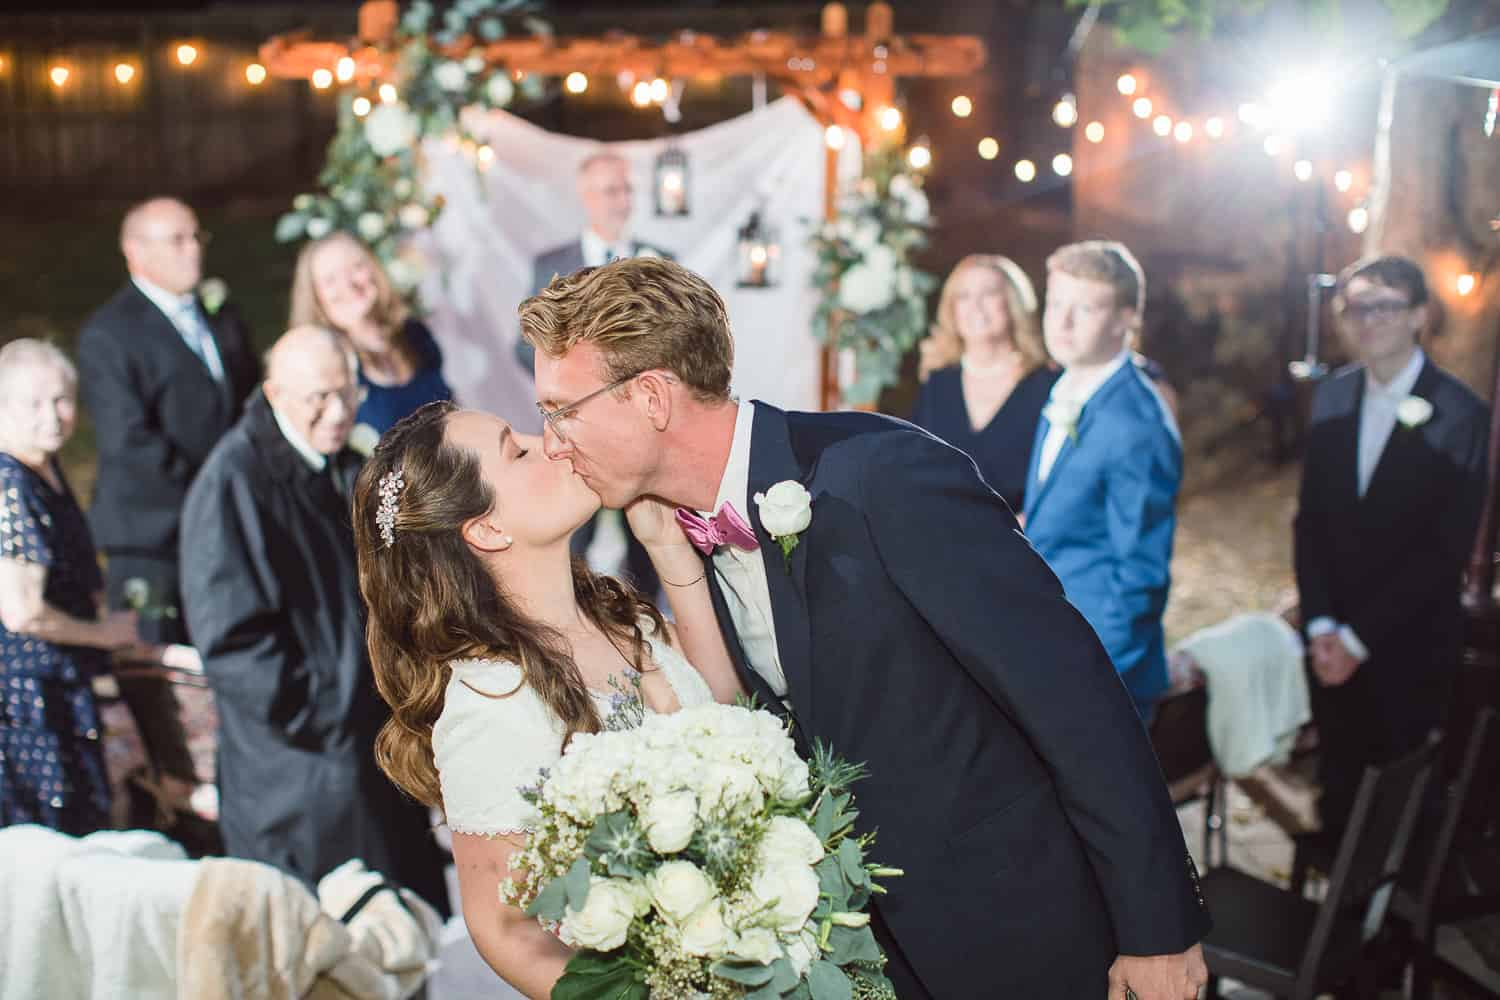 First kiss at night wedding ceremony outdoors